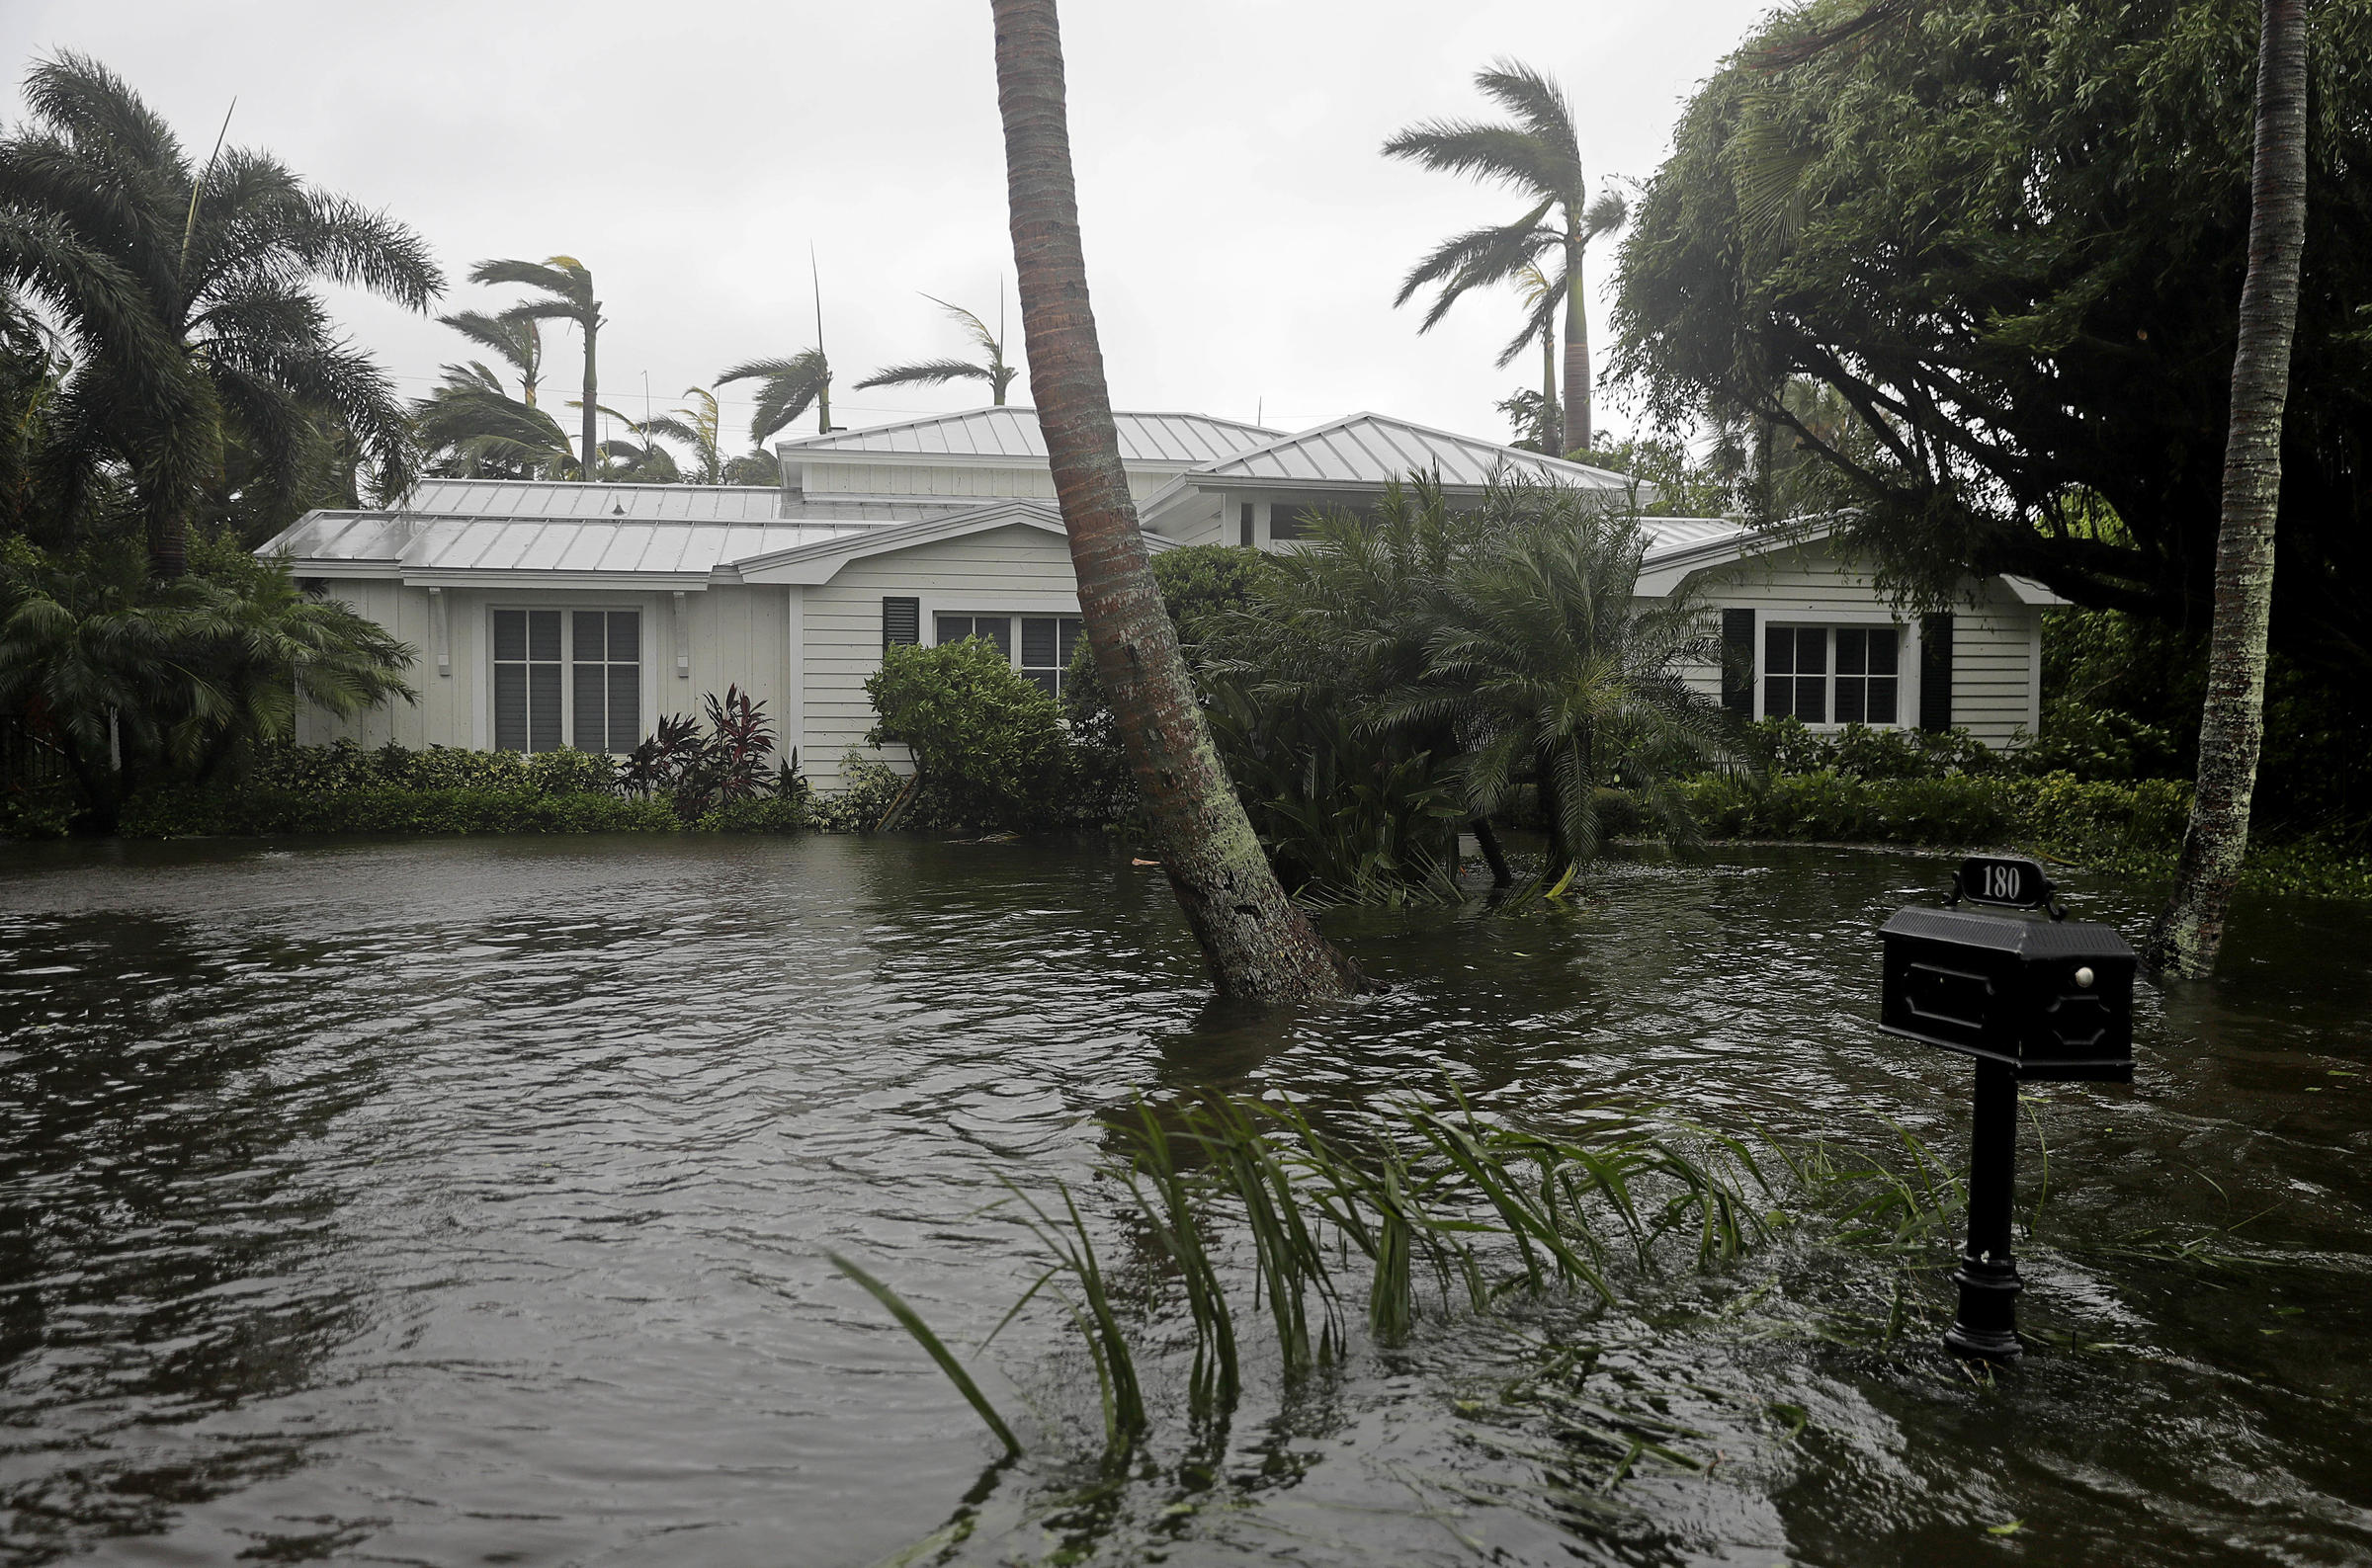 How to handle flood damage after a hurricane if you're uninsured